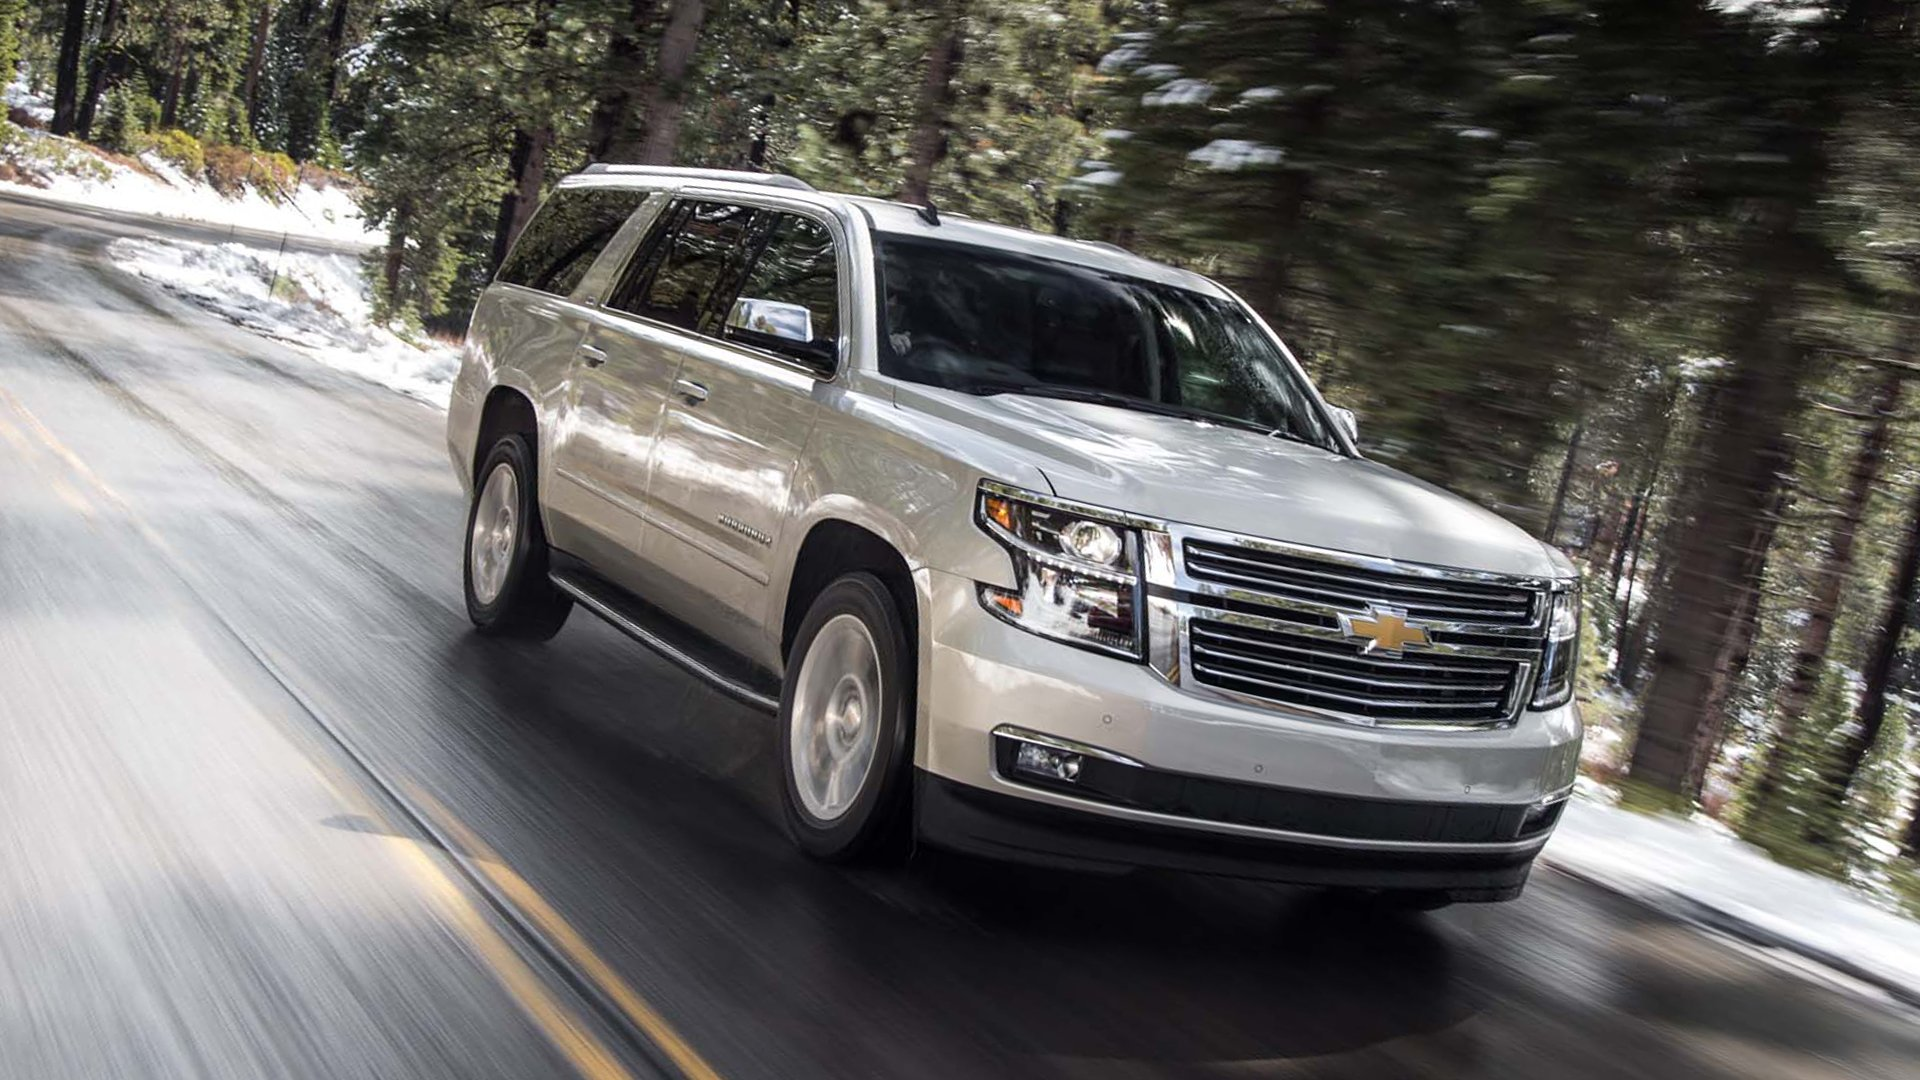 Chevrolet Suburban 2018 USA Price List HD